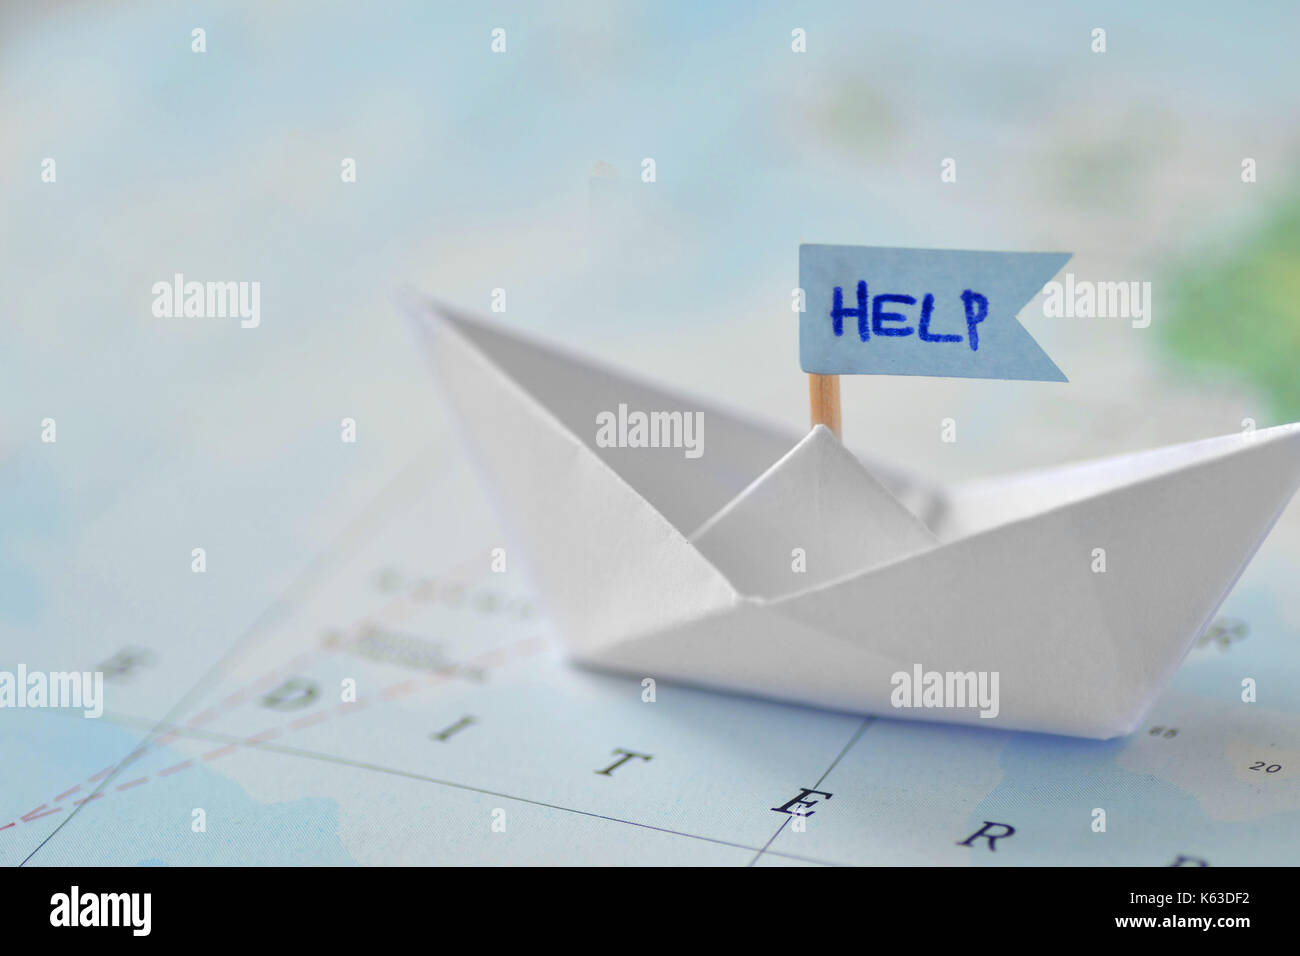 Immigration and ask for asylum concept - paper boat on a map - Stock Image